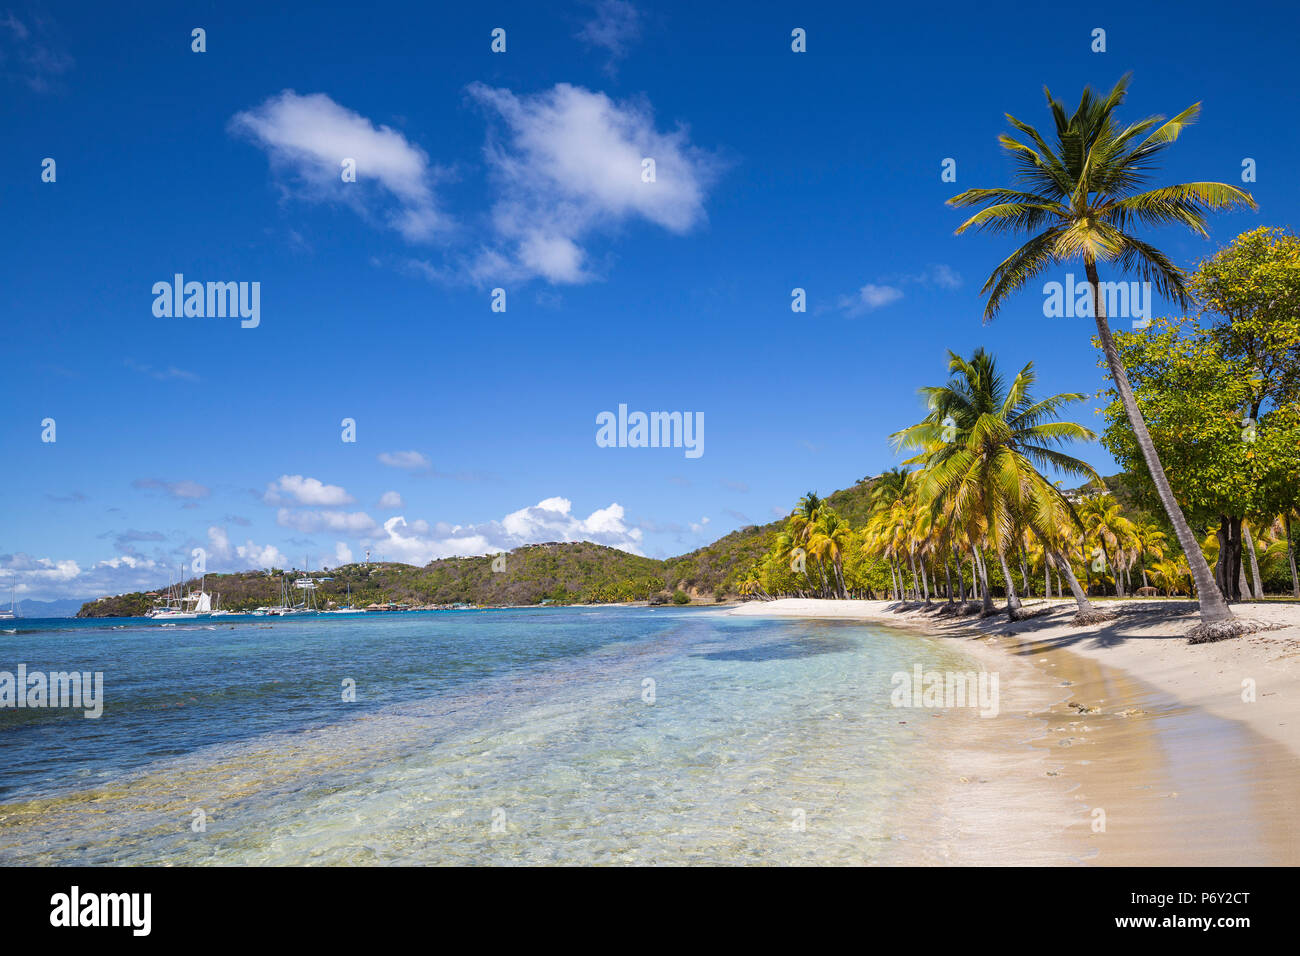 St Vincent and The Grenadines, Mustique, Brittania Bay beach - Stock Image